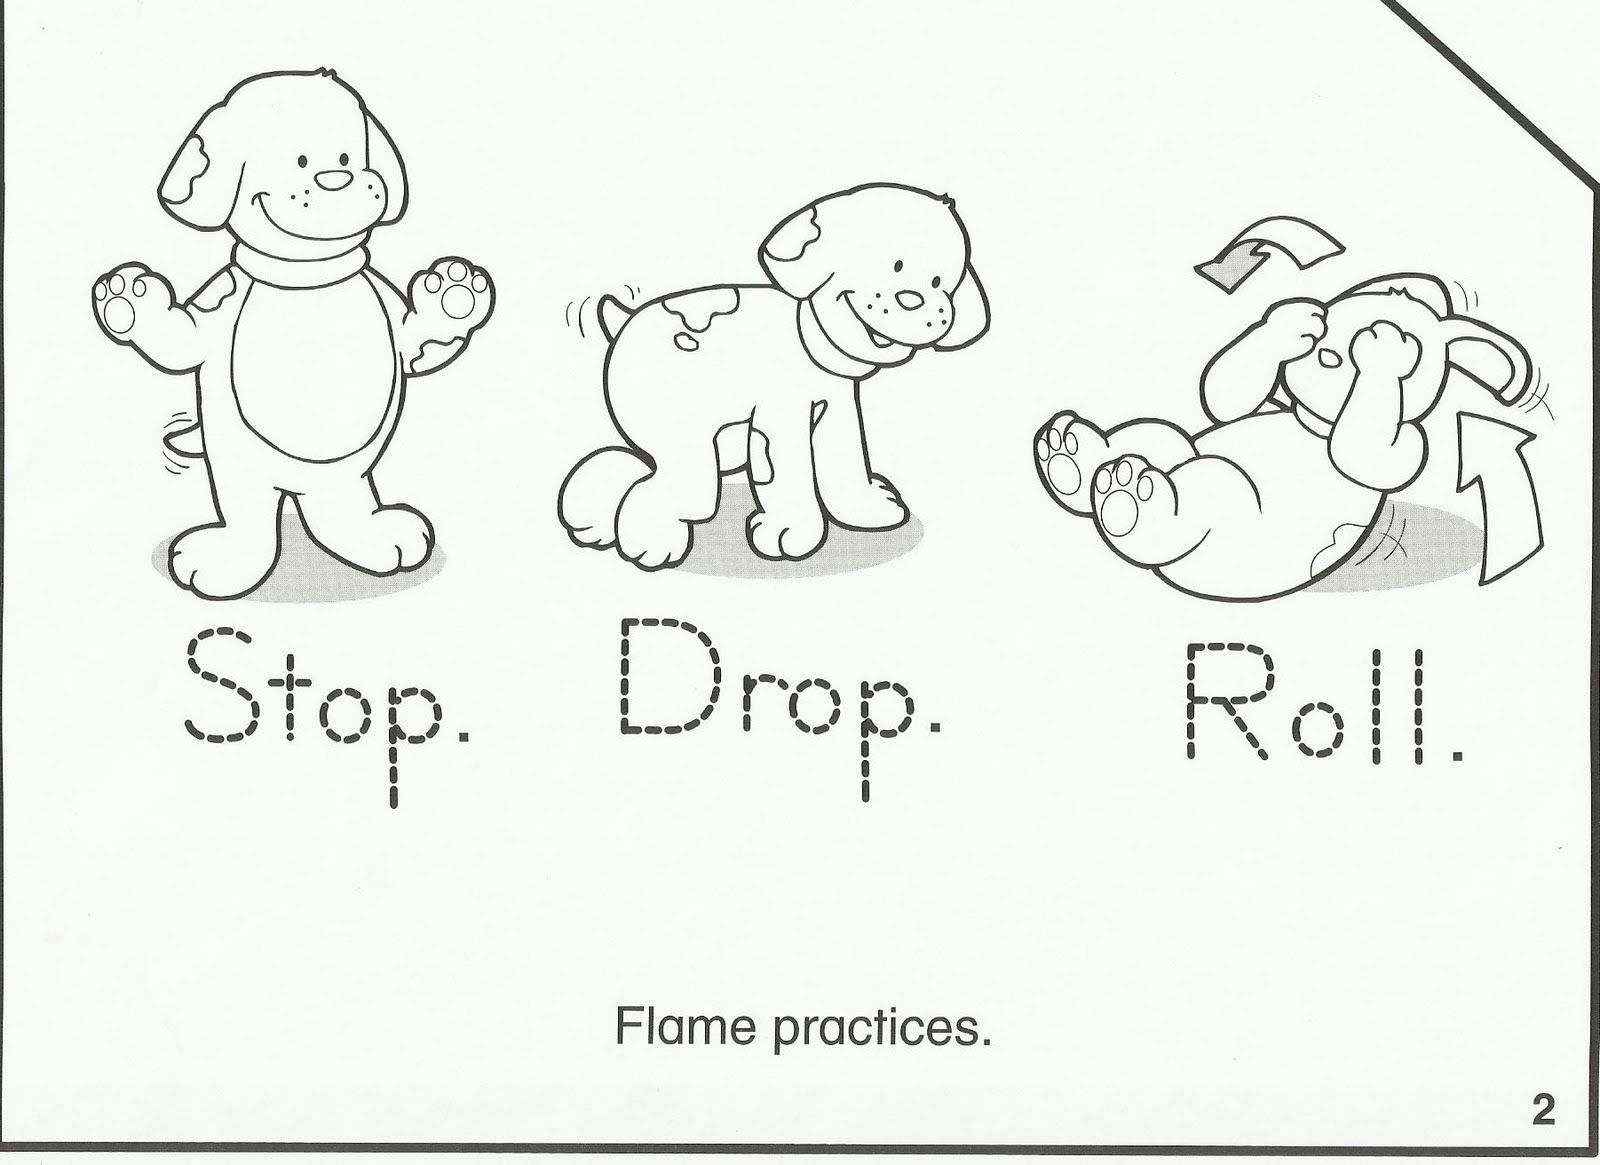 fire safety coloring pages for preschool - Fire Safety Coloring Pages